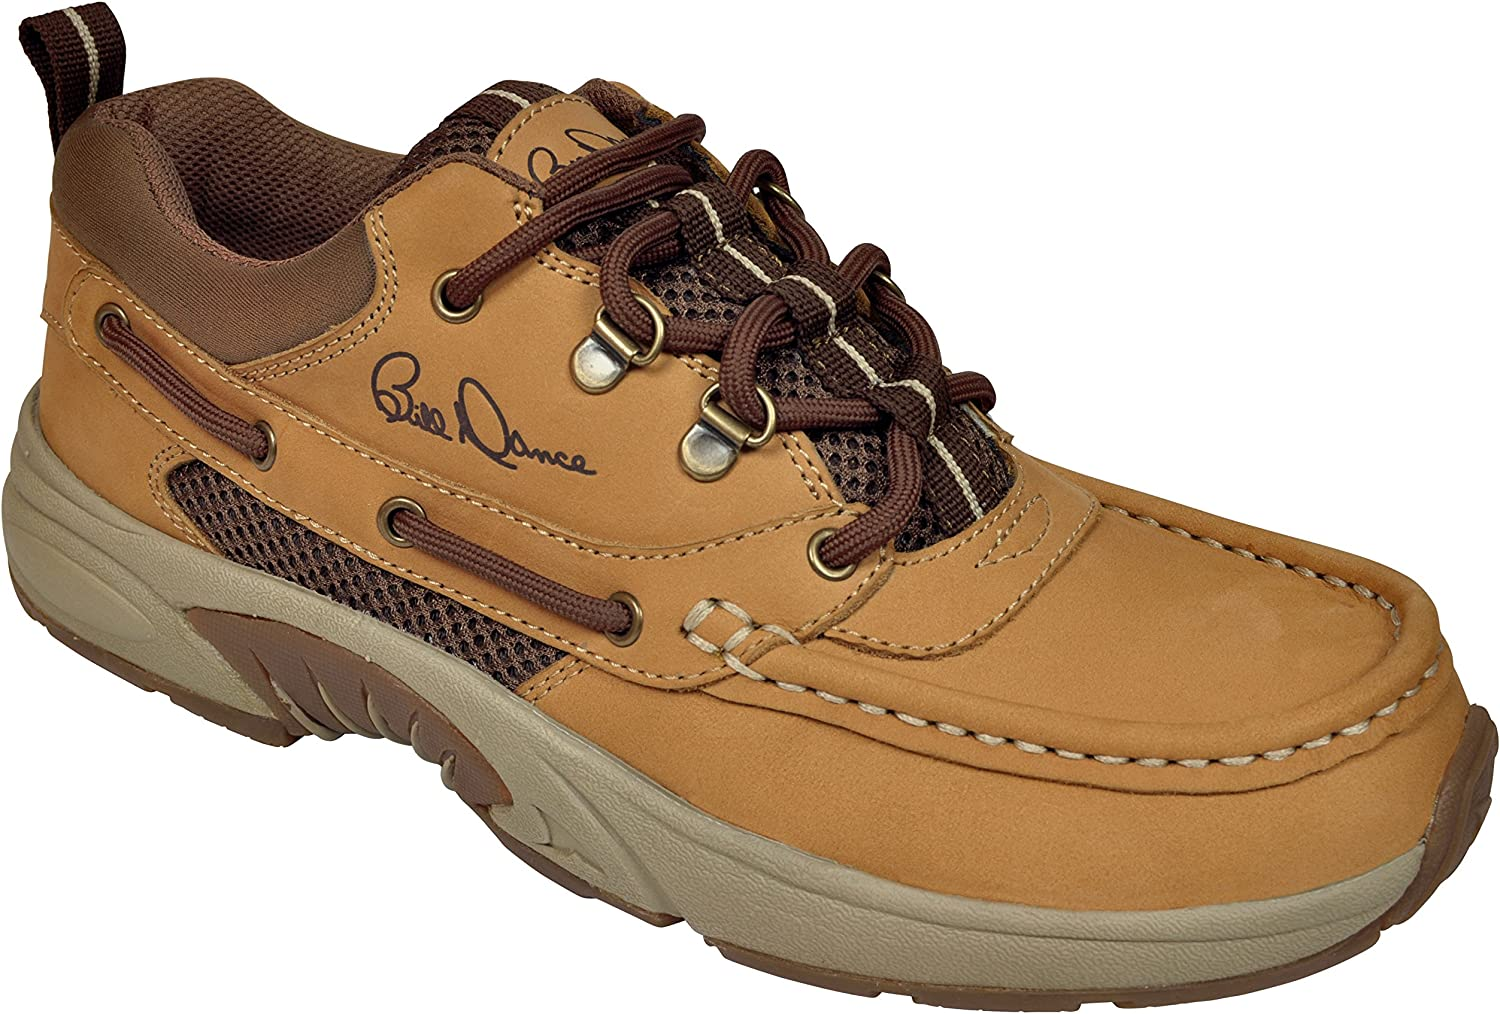 Fishing and Outdoor Shoe Premium Leather and Comfort Rugged Shark Bill Dance Pro Boat Shoe Mens Sizes 8 to 13